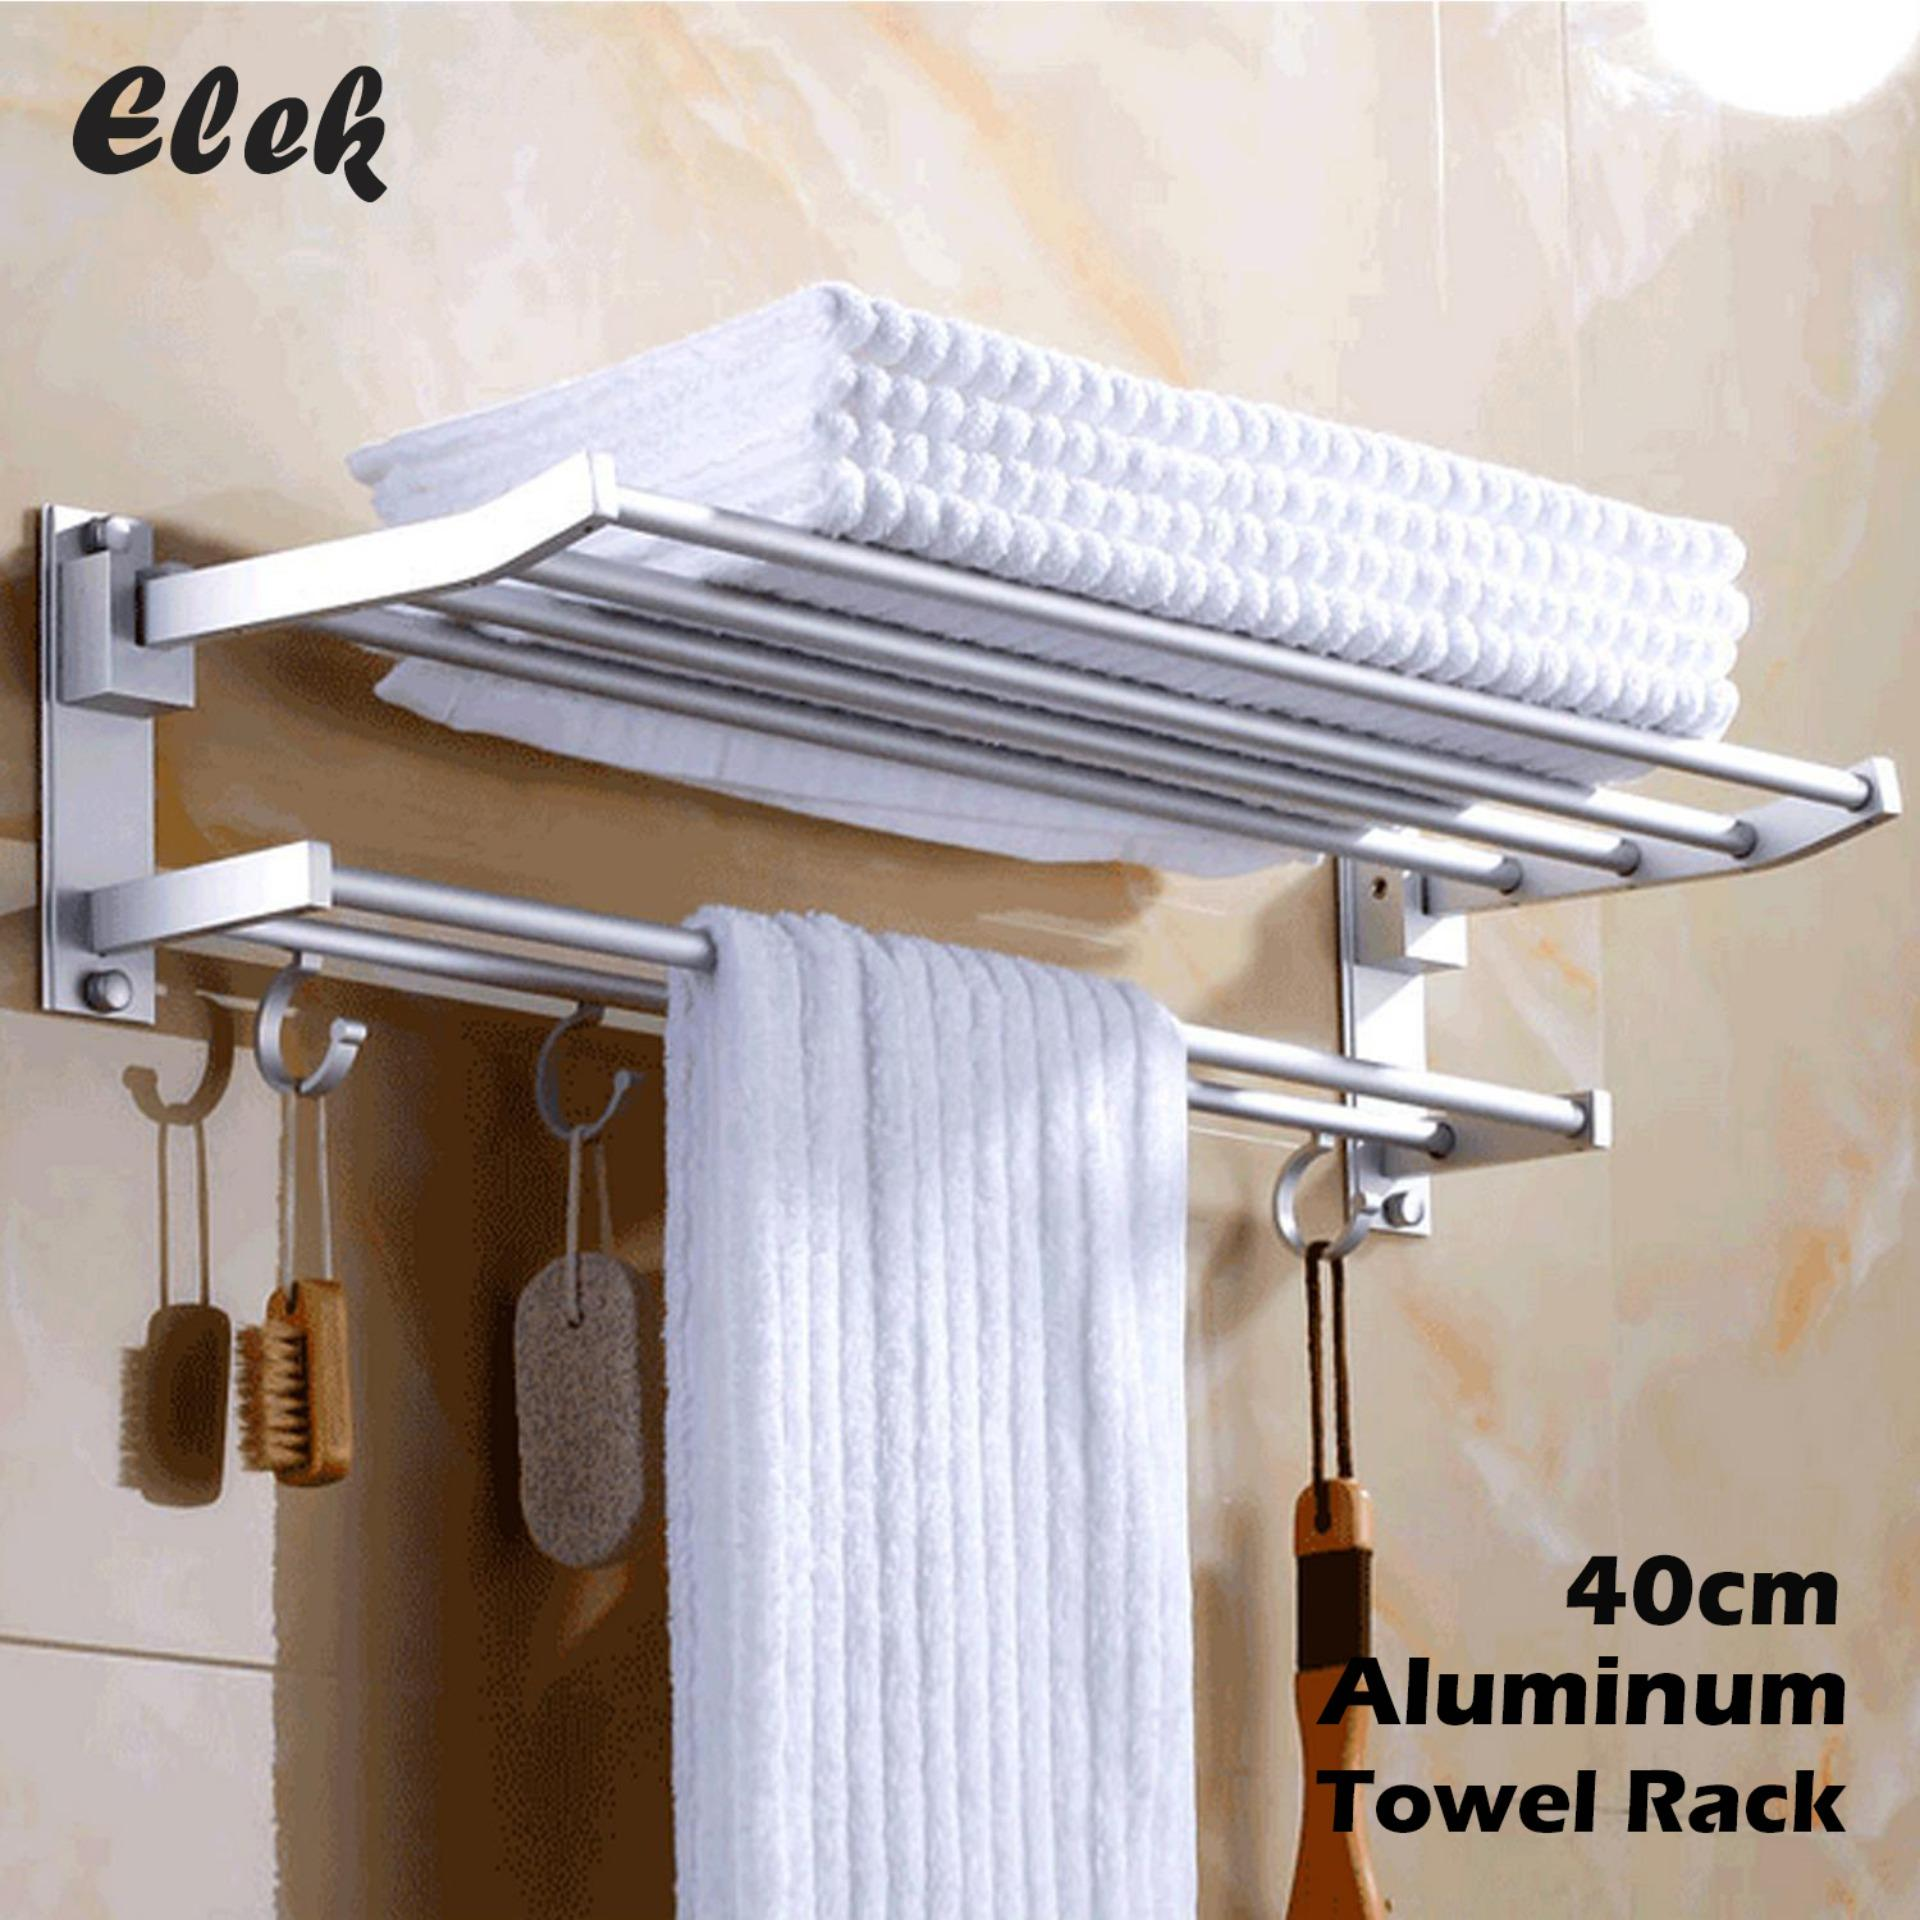 Admirable Elek 40Cm Foldable Bathroom Shower Wall Mounted Dual Layer Space Aluminum Towel Storage Hanger Shelf Holder Stand Rack With Hooks Download Free Architecture Designs Rallybritishbridgeorg